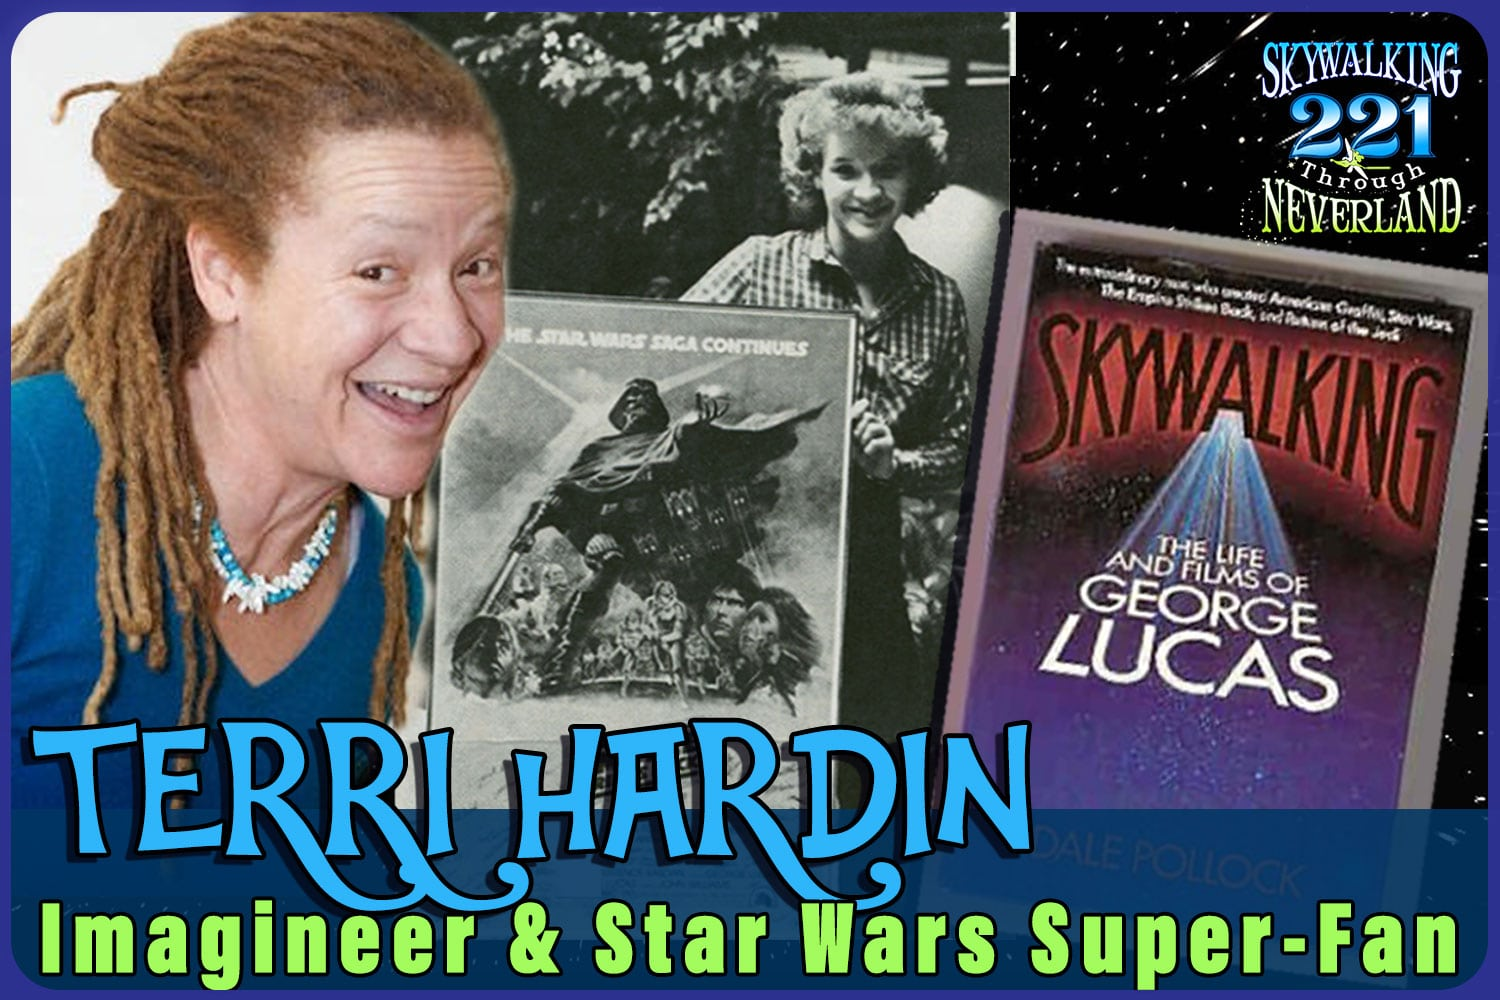 Skywalking Through Neverland #221: Terri Hardin - Imagineer & Star Wars Super-Fan - Part 1